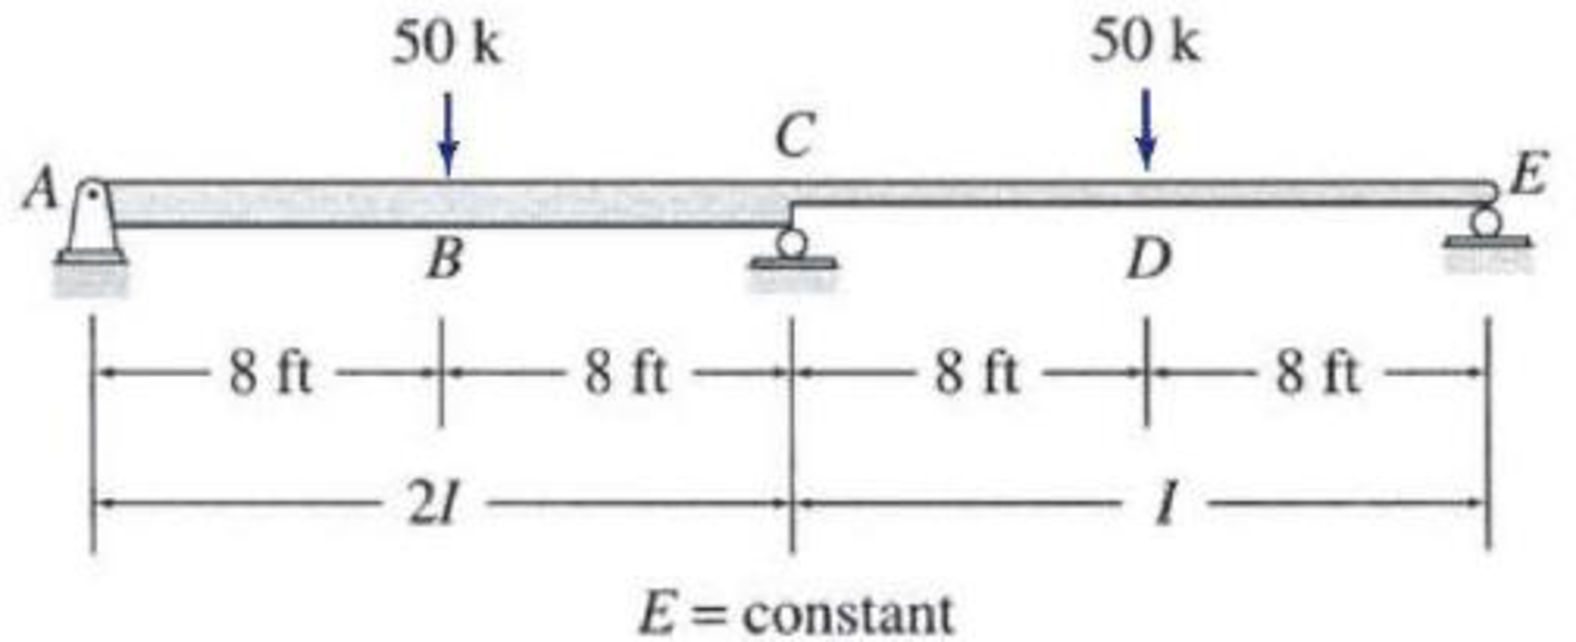 Chapter 13, Problem 32P, 13.30 through 13.33 Solve Problems 13.9 through 13.12 by selecting the bending moment at the